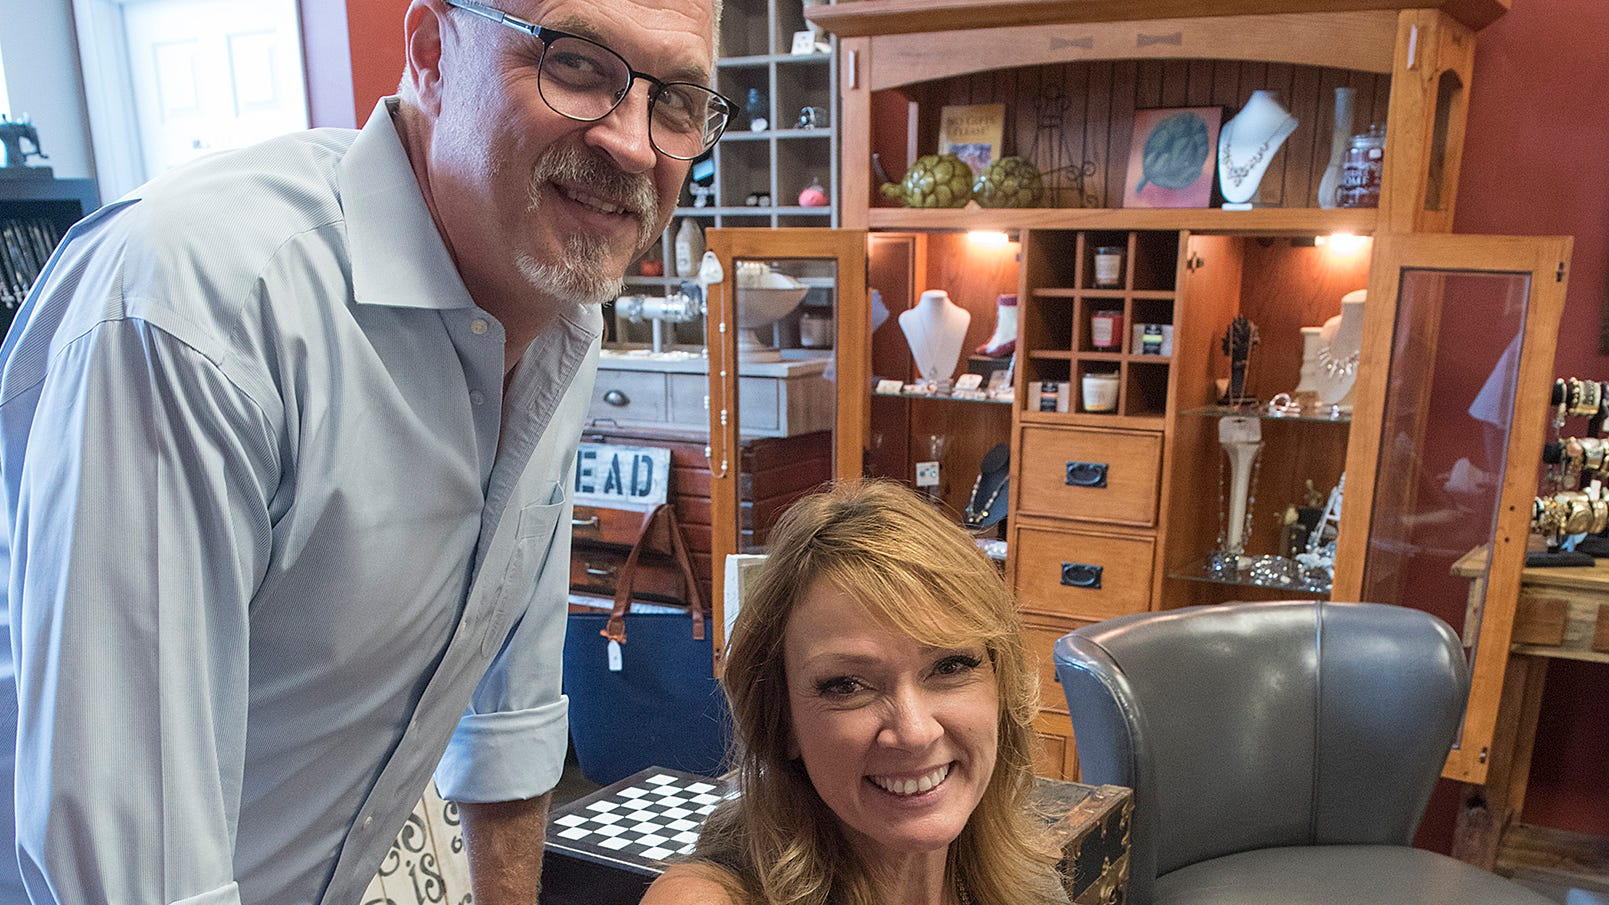 Kelly and Jack Reutter, owners of CO Reutter Salon sell more than hair care products in the rear part of their business. Works by local artists and artisans fill the back of the store, and they've partnered with North 72 Boutique to fill space in the front of the shop.